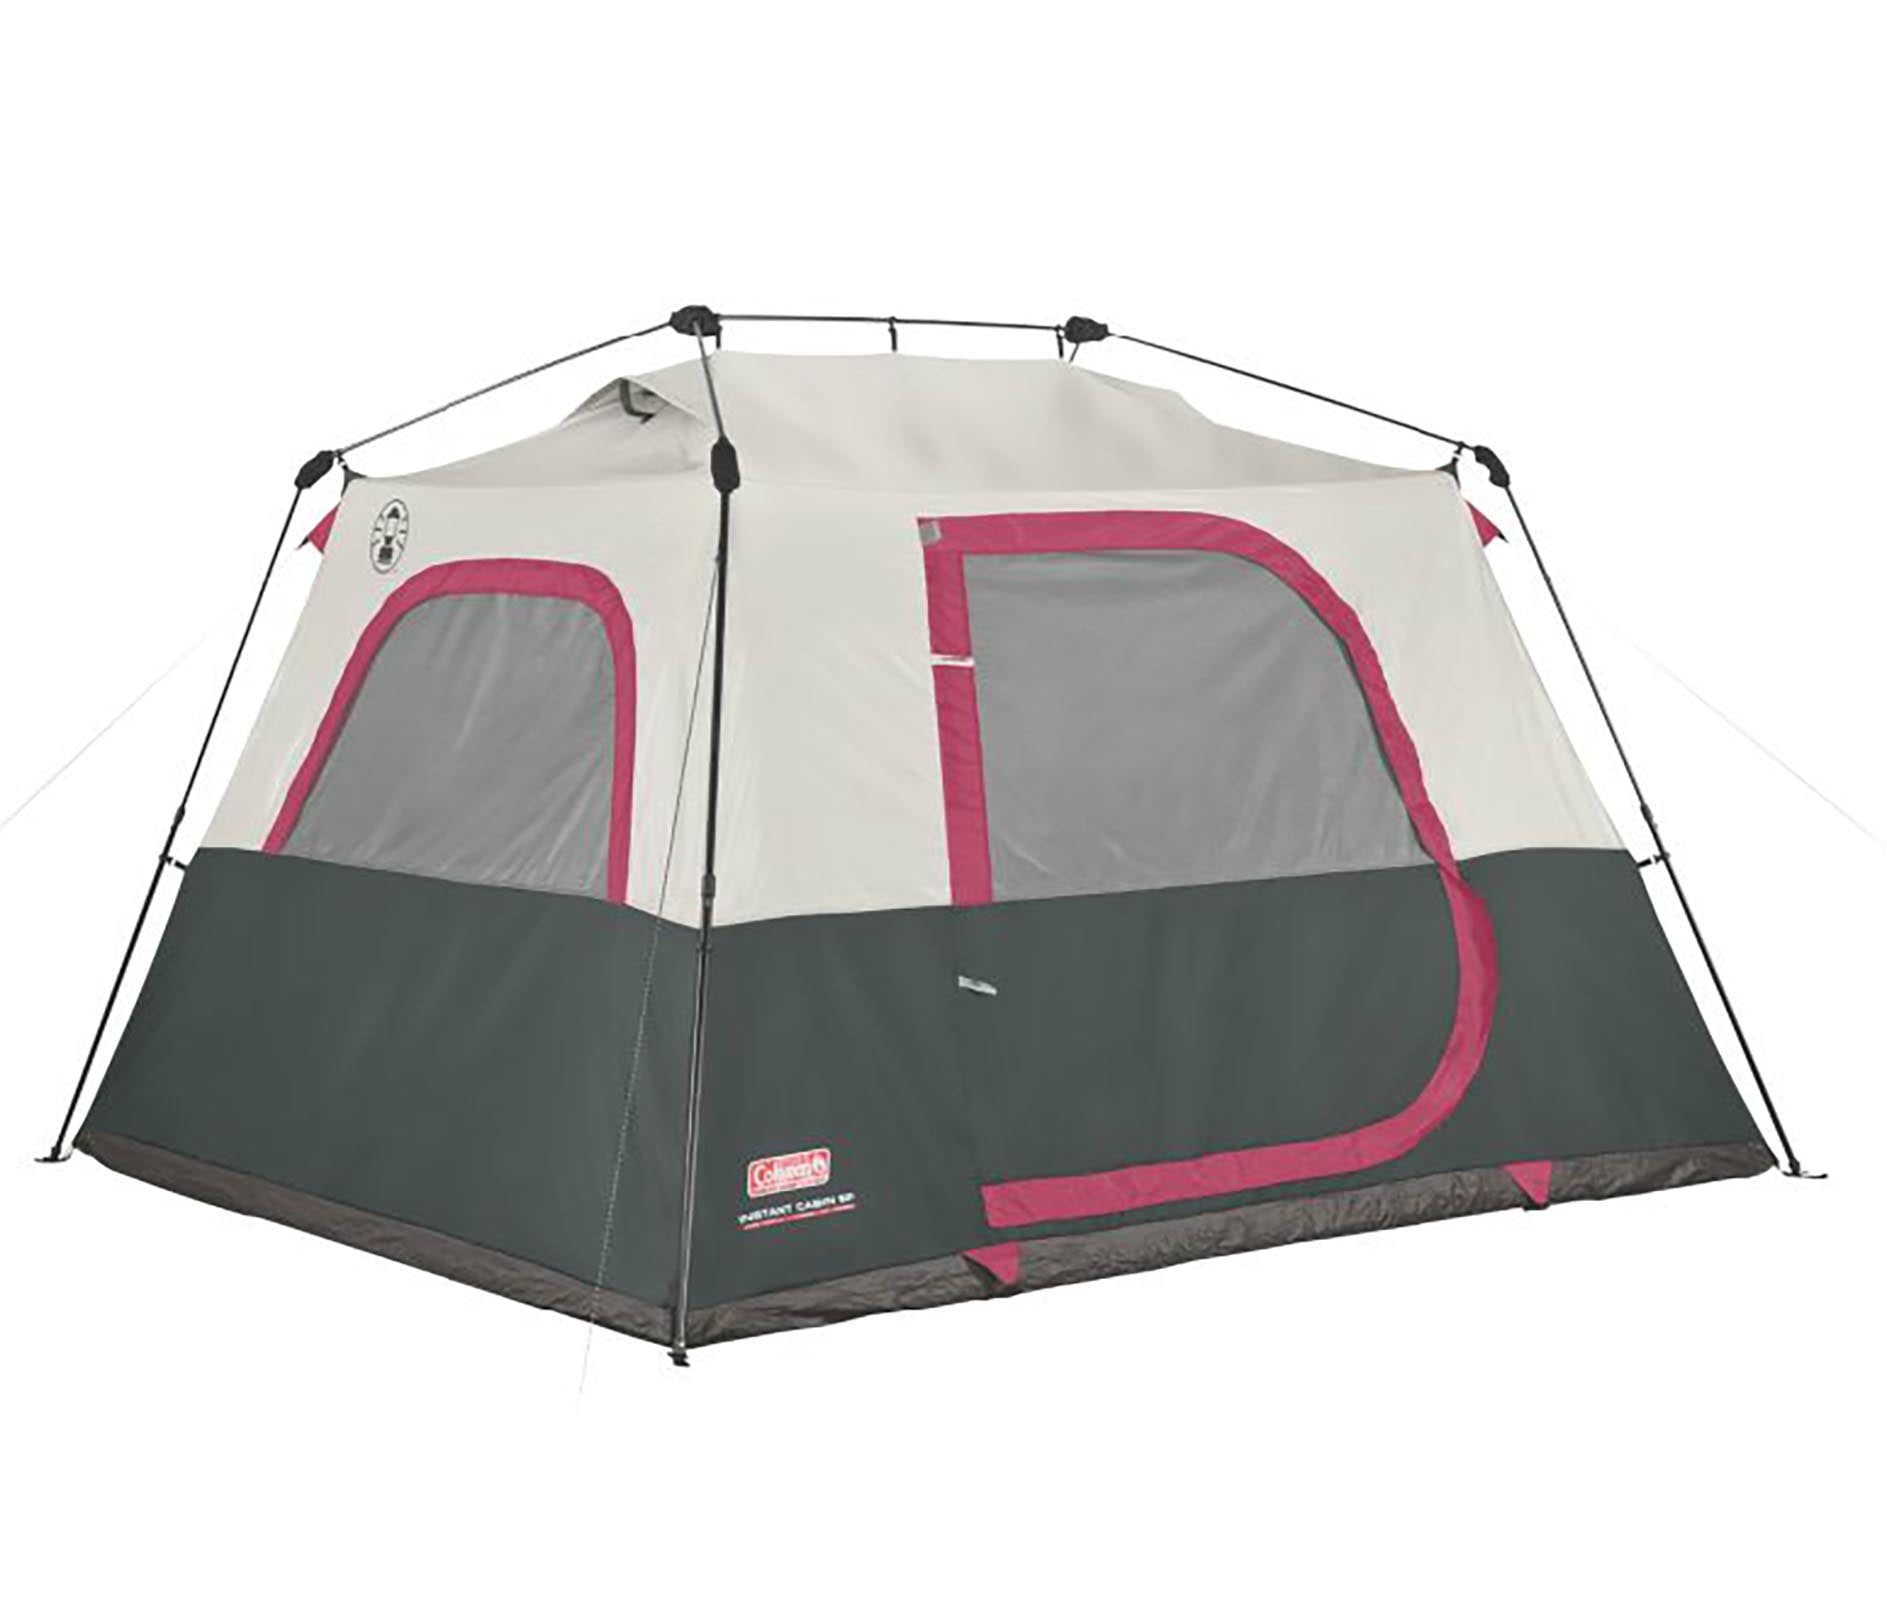 Coleman 6-Person Family Waterproof C&ing Instant Cabin Tent 10 x 9 x 6 Feet - Walmart.com  sc 1 st  Walmart : coleman instant up 6 person tent - memphite.com